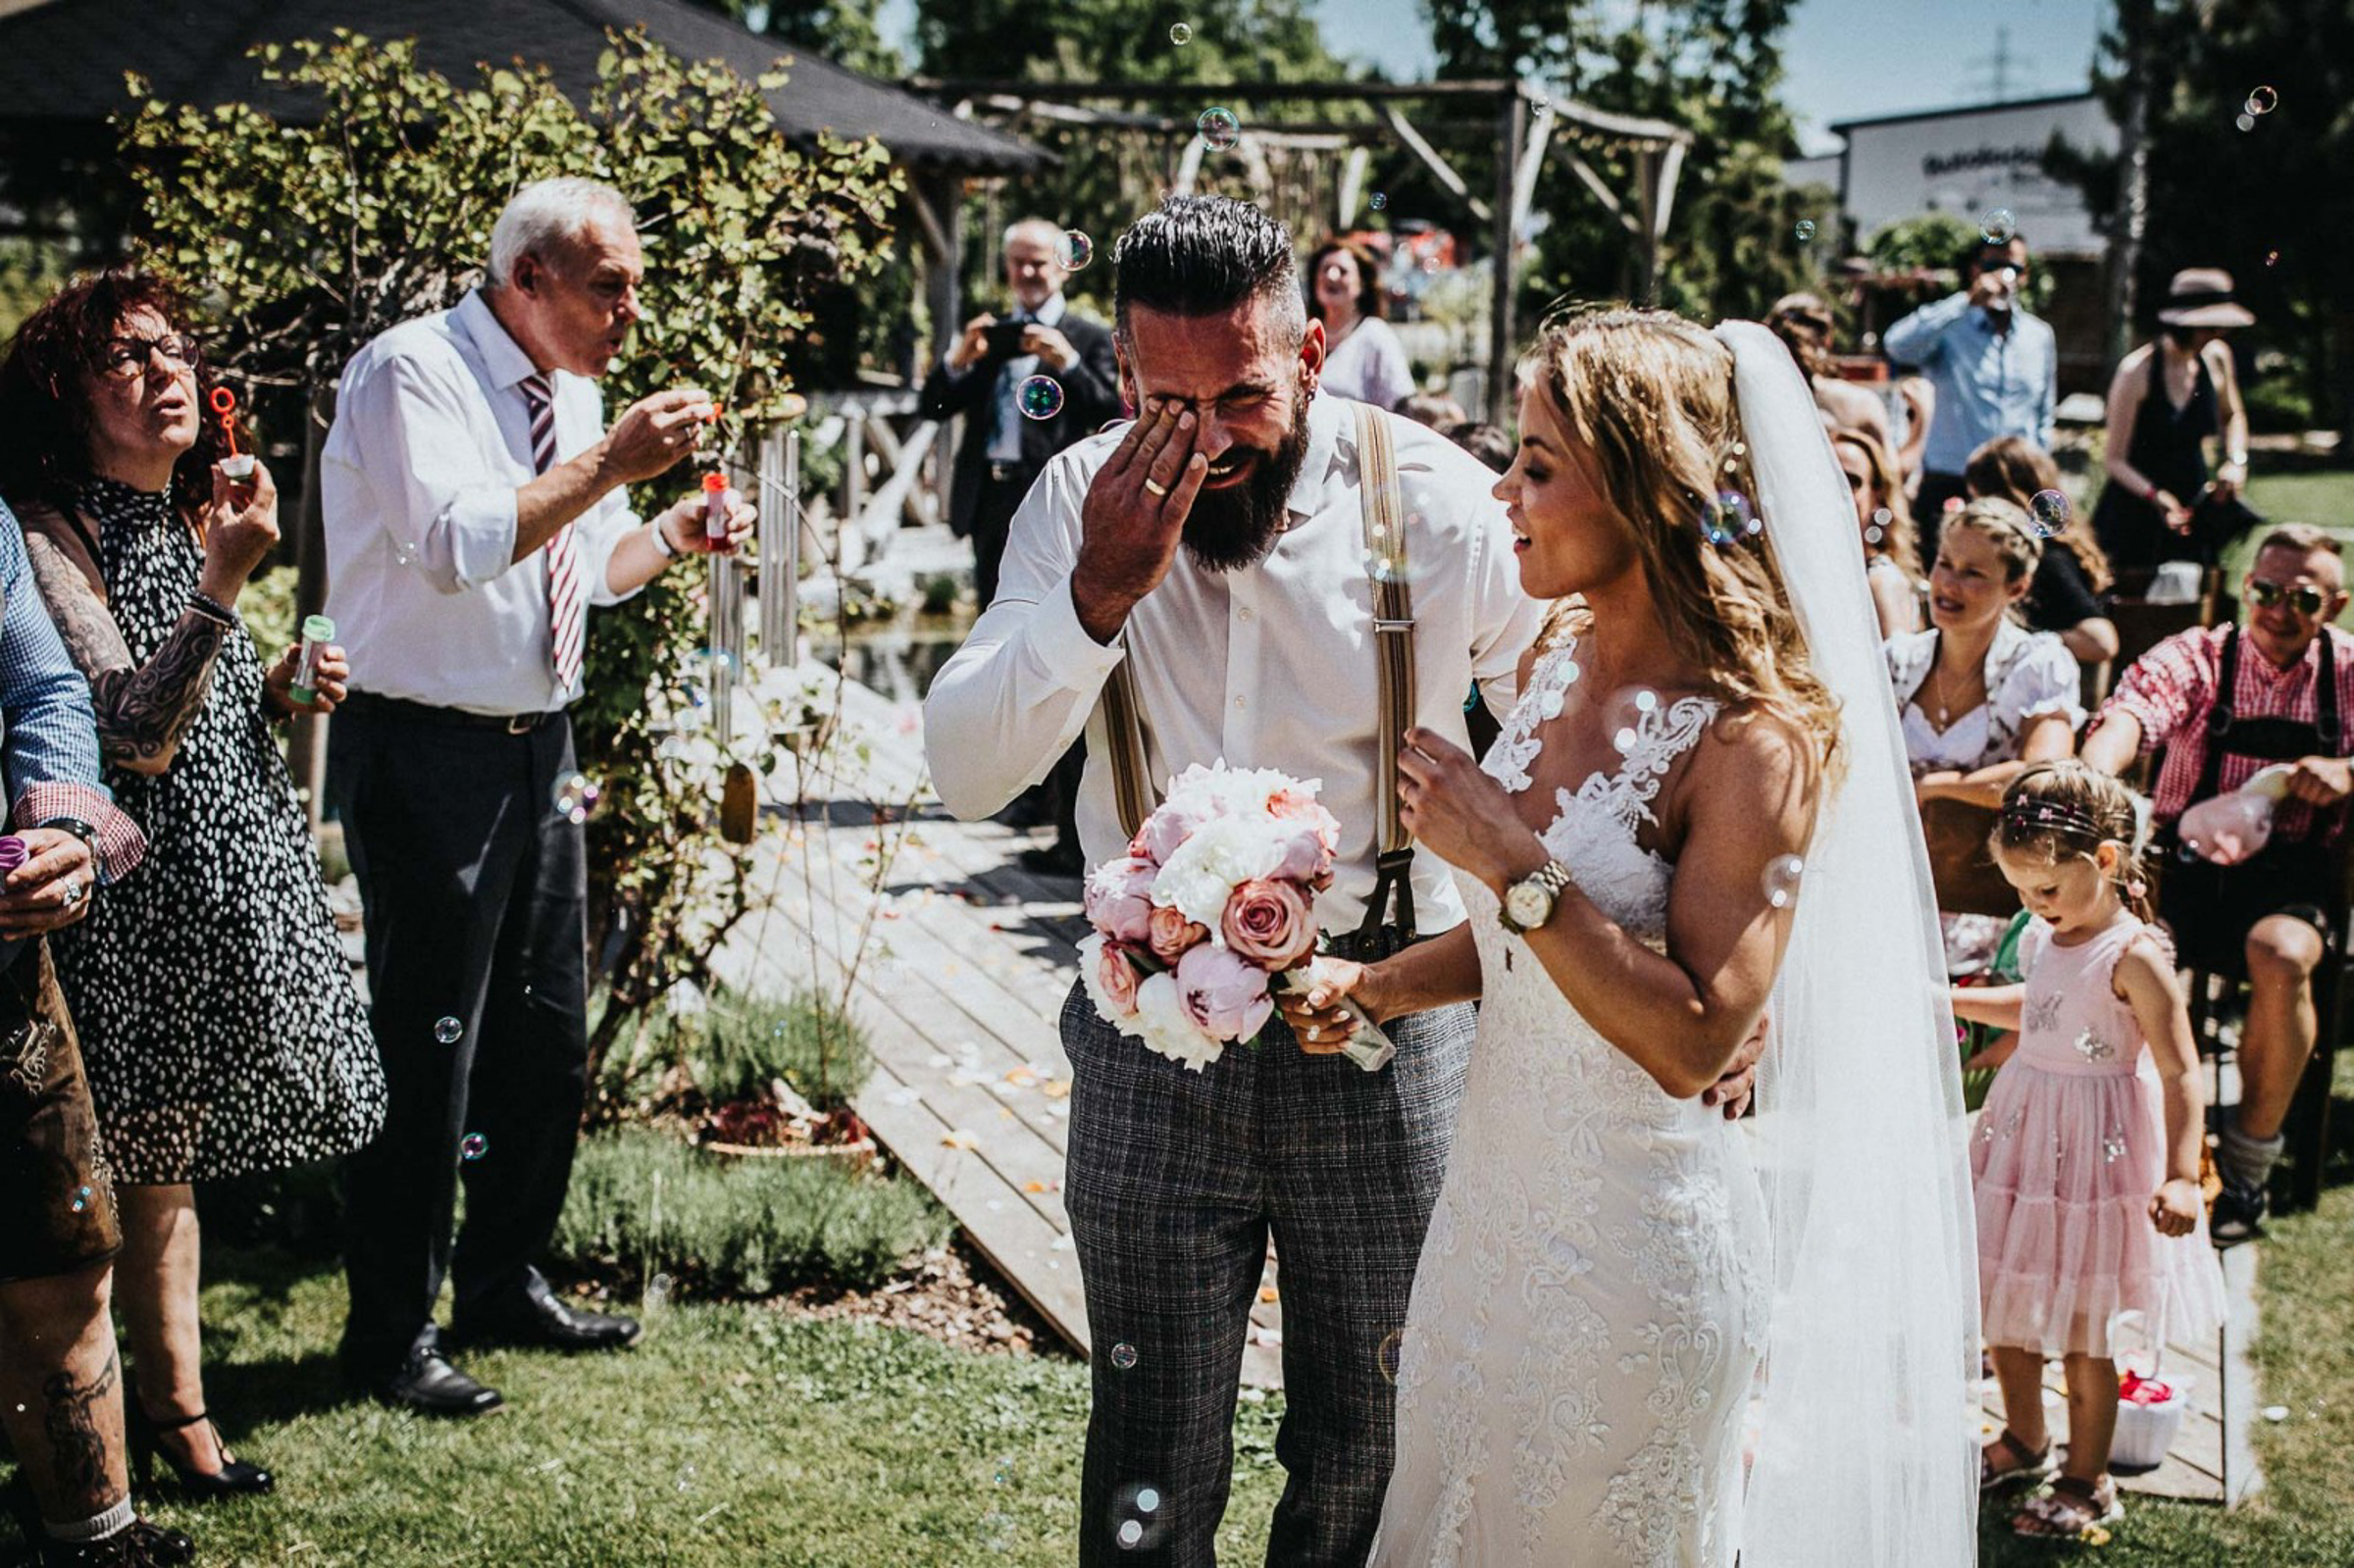 happy crying groom with bride at ceremony- photo by FineArt Weddings | Photography